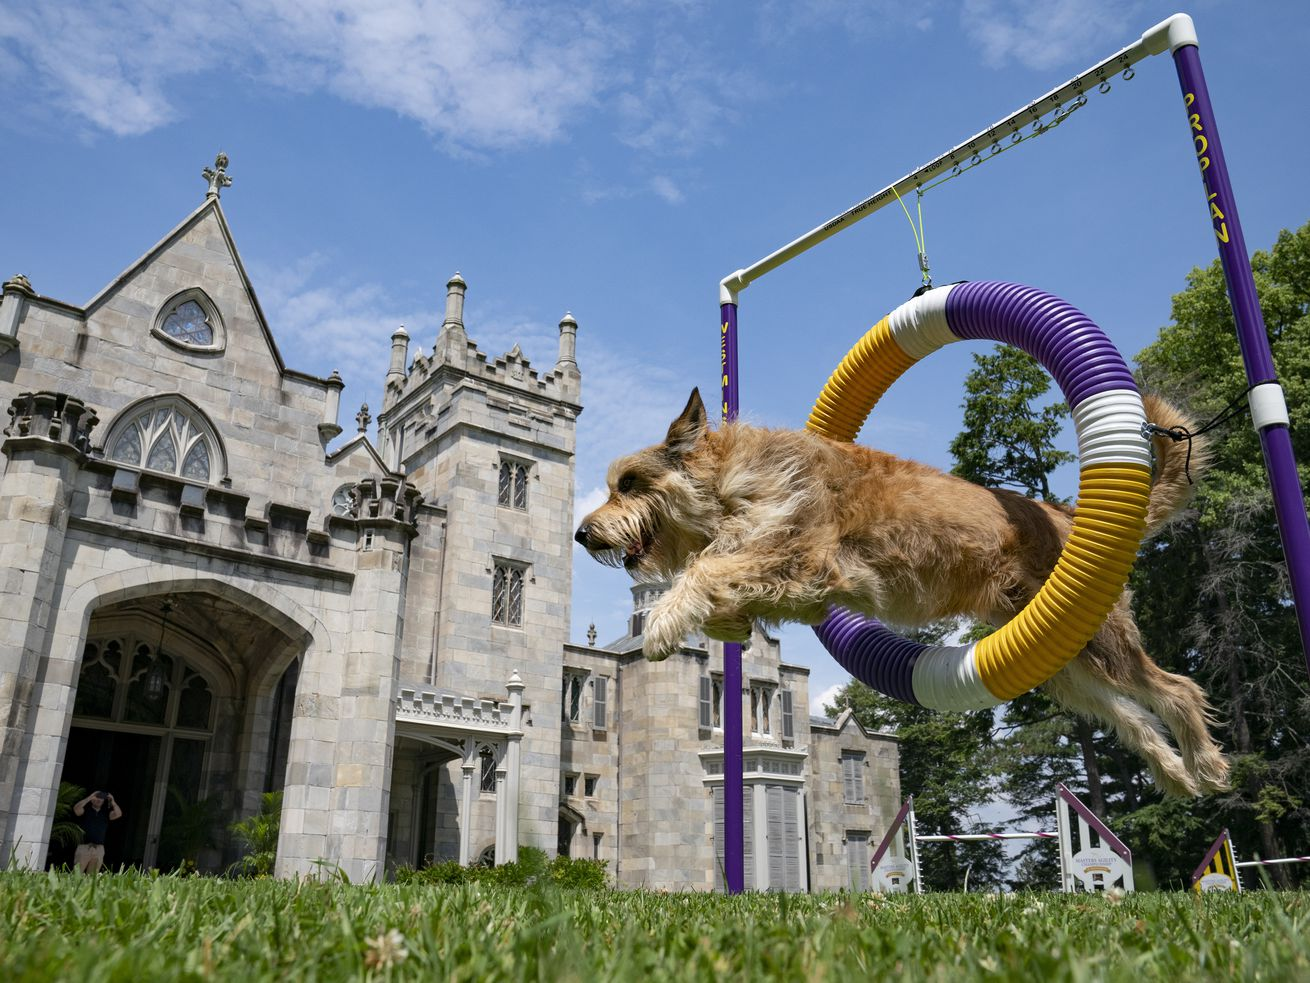 Chet, a berger picard, performs a jump in an agility obstacle in Tarrytown, New York, at the Lyndhurst Estate where the 145th Annual Westminster Kennel Club Dog Show will be held outdoors.